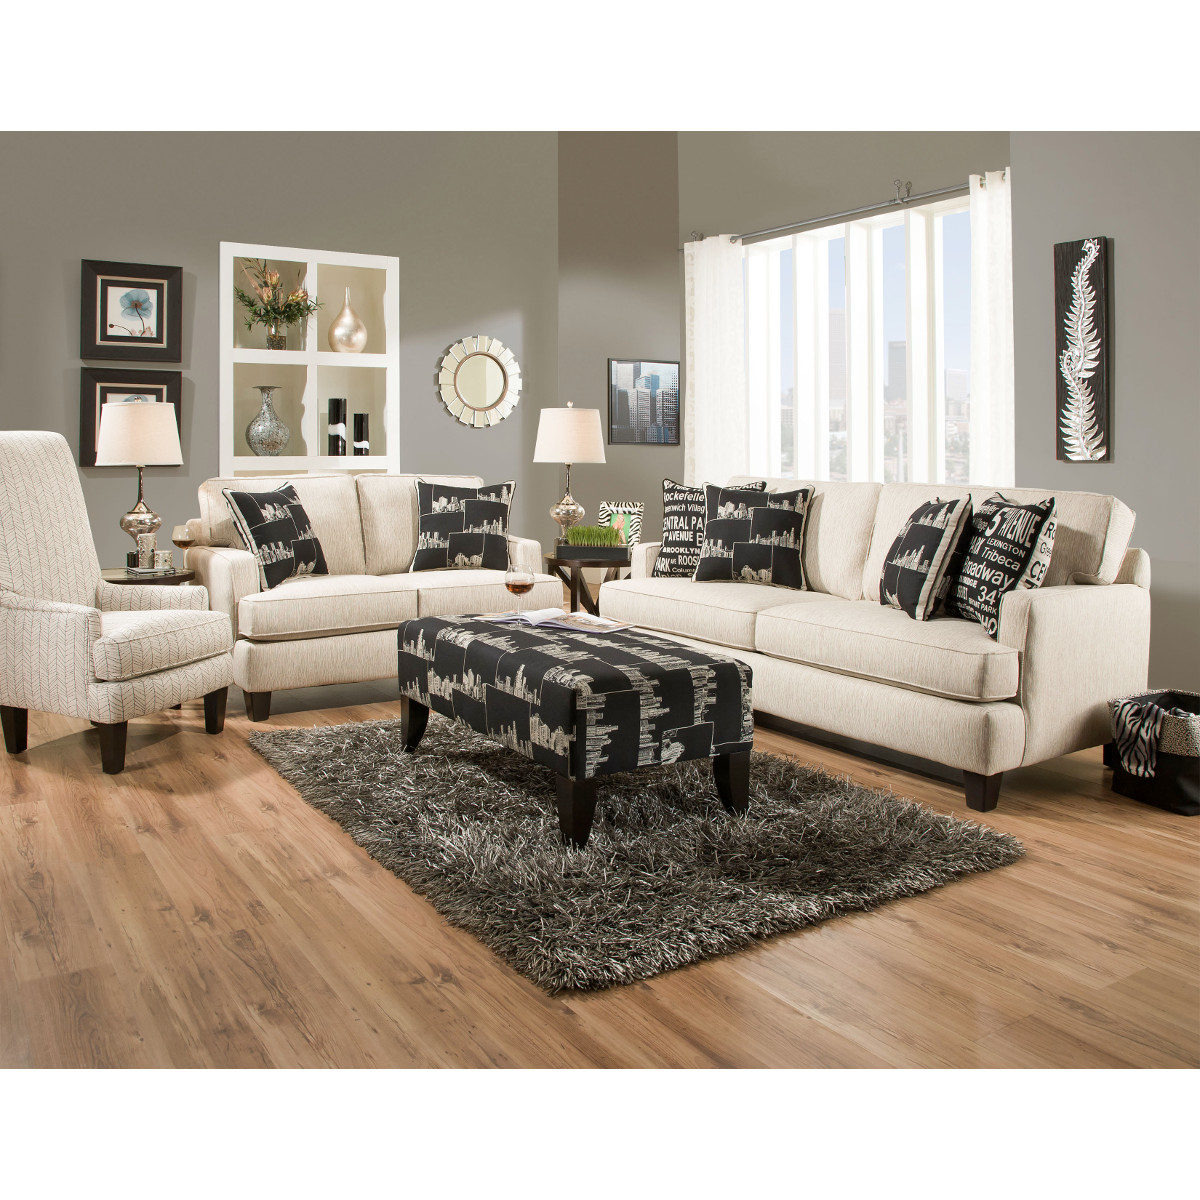 New Living Room Furniture Apply For Credit For Living Room Furniture Today Conns